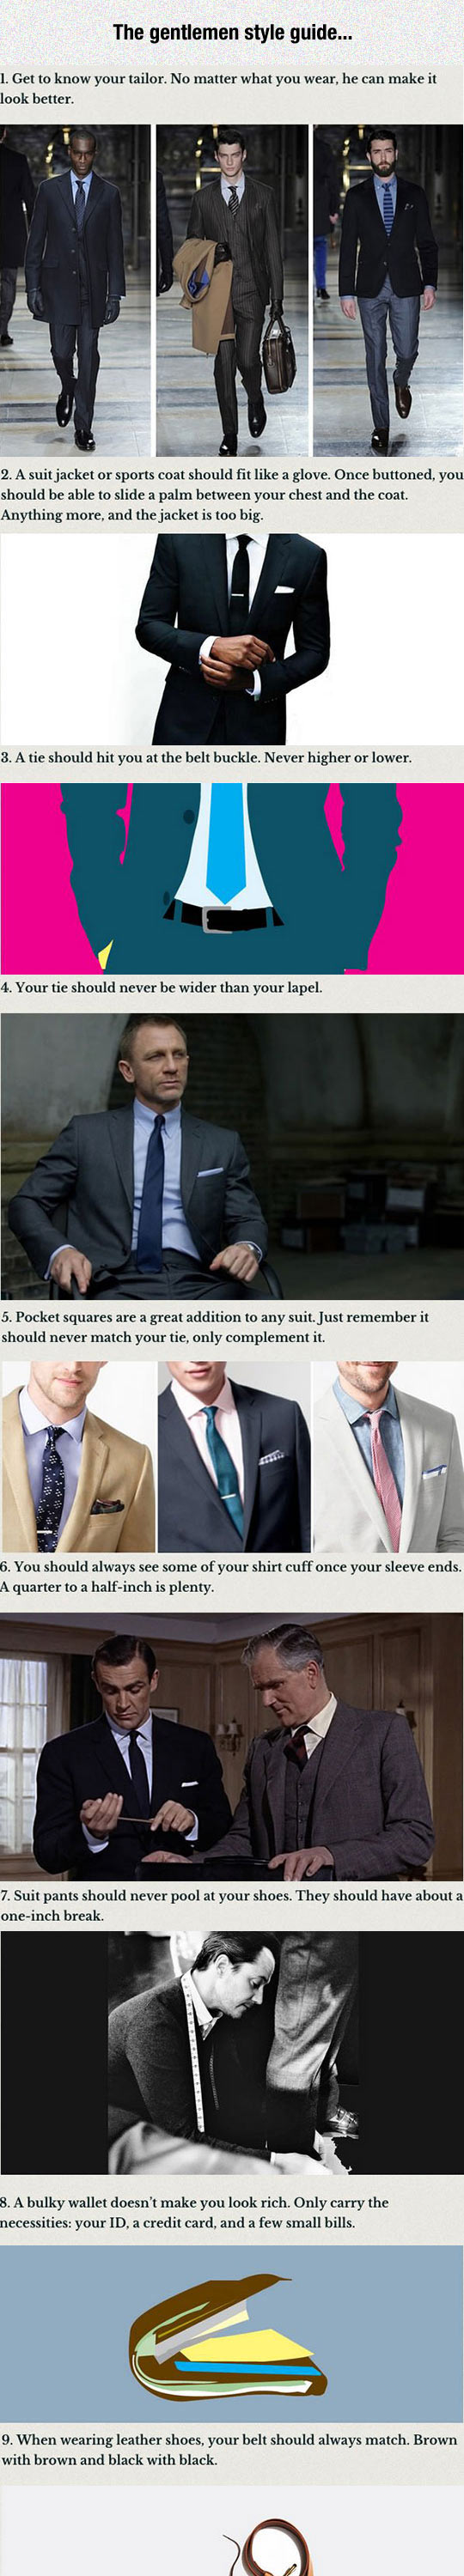 funny-men-style-guide